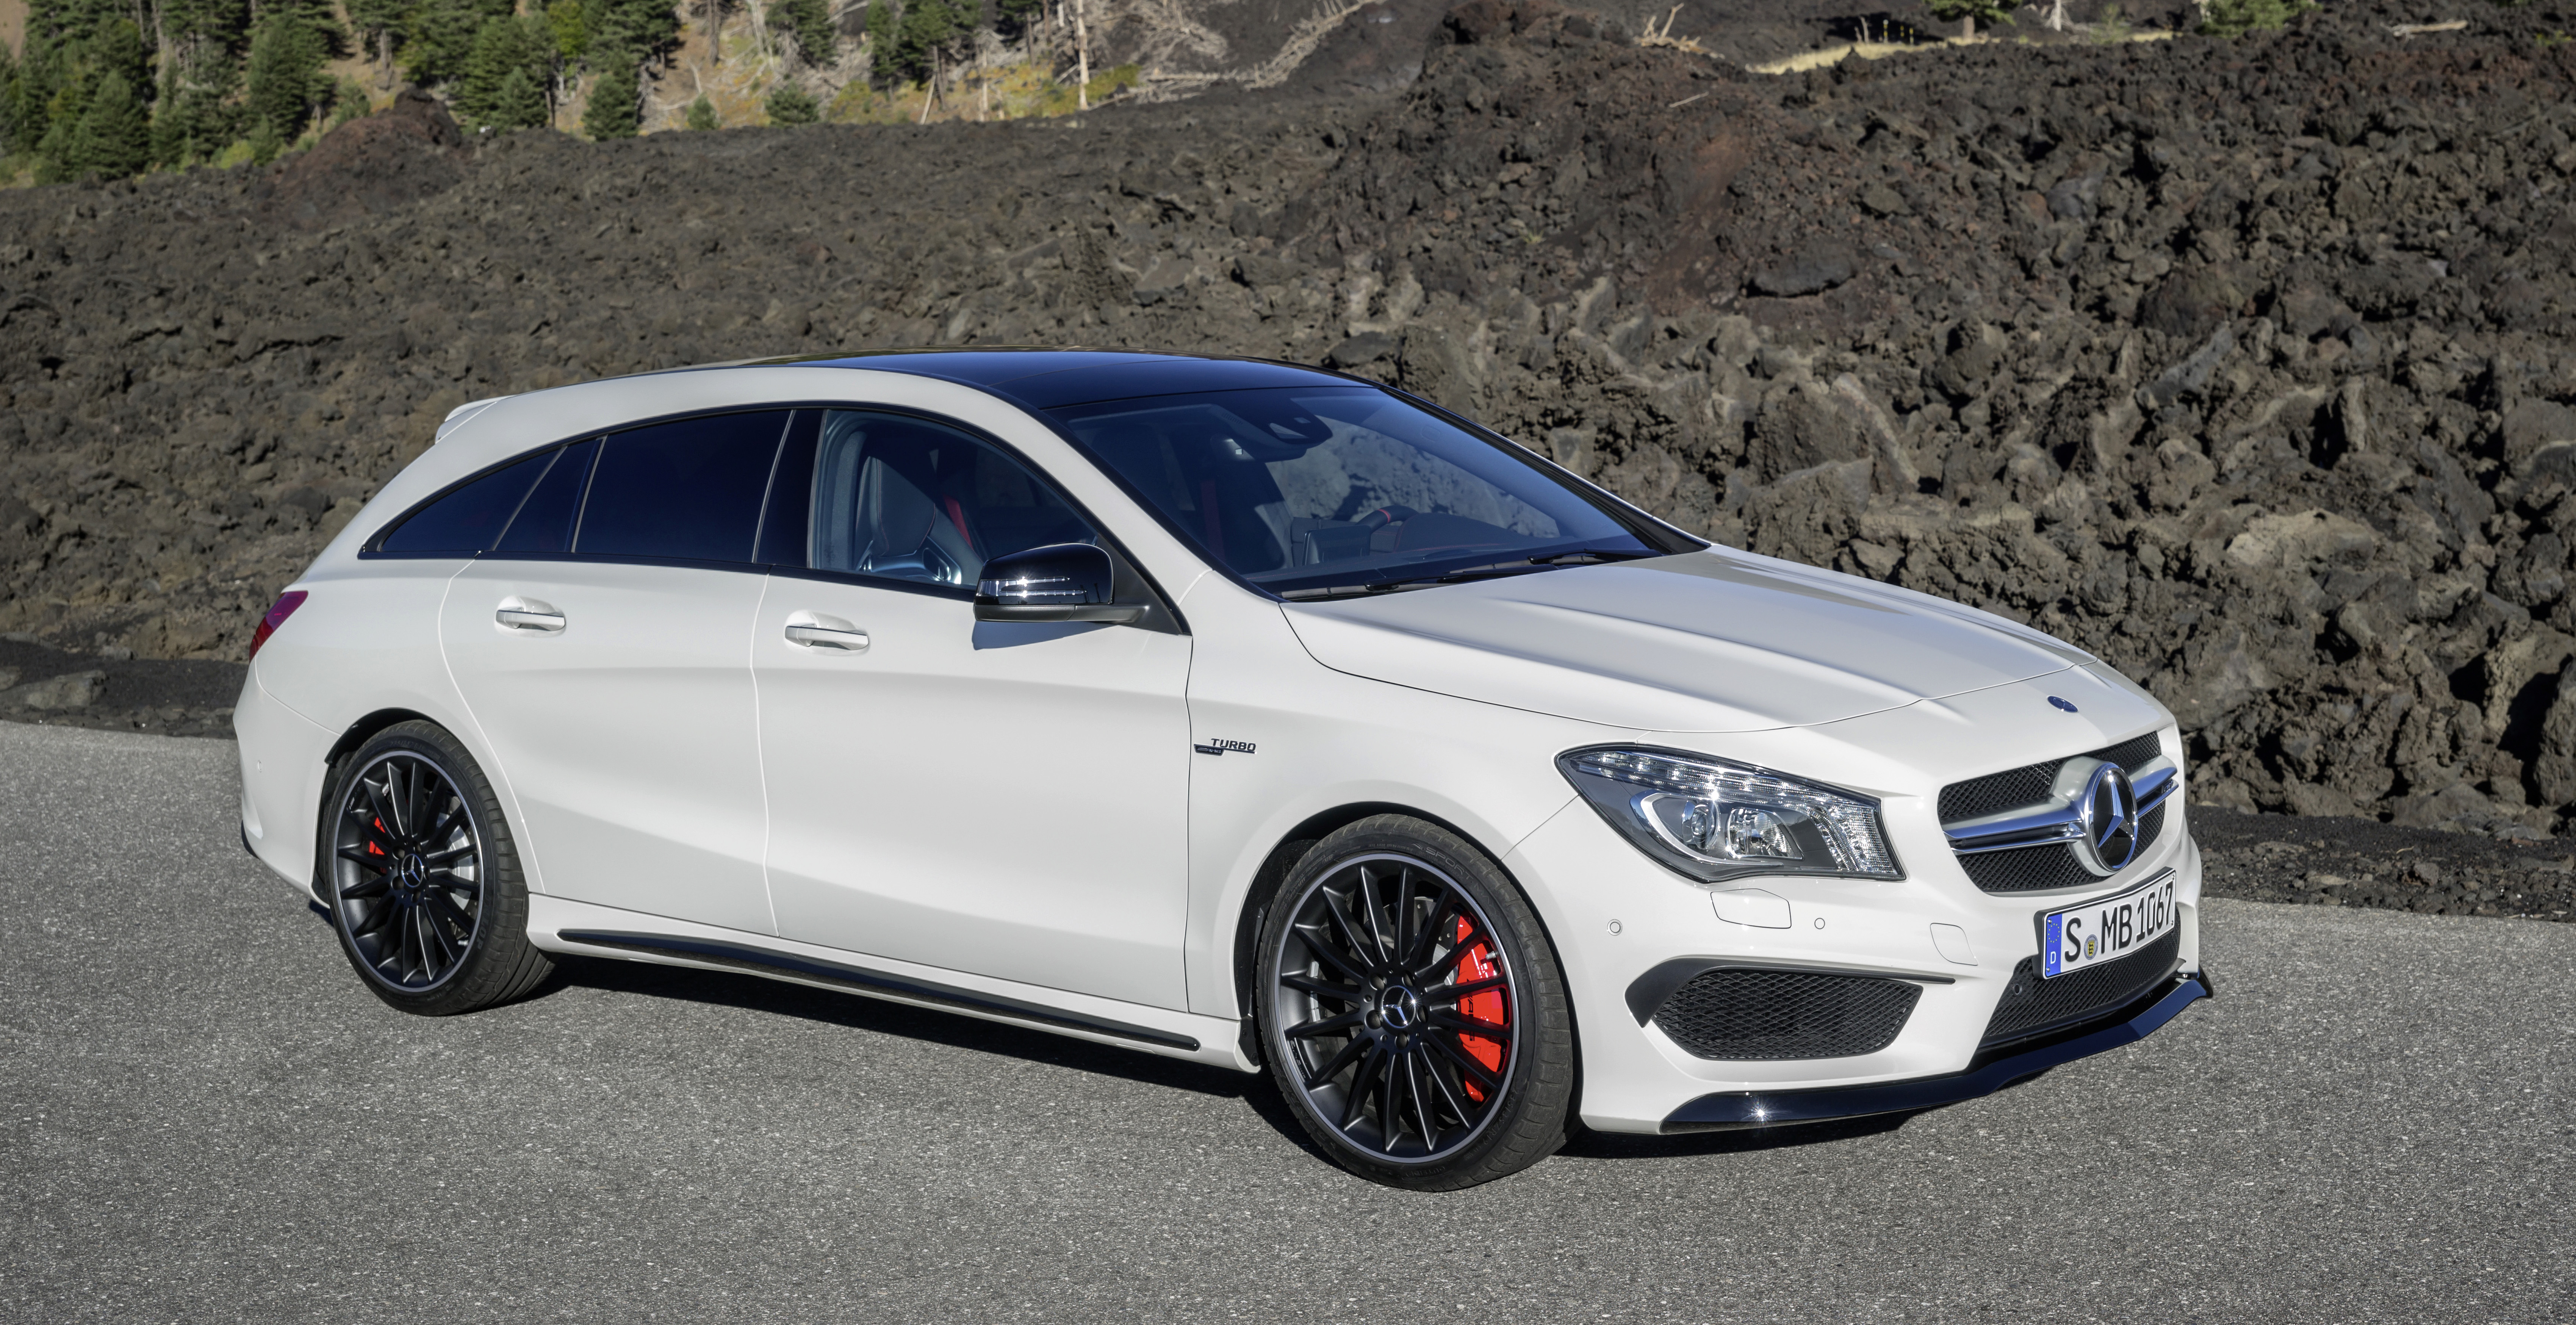 gallery mercedes cla 45 amg shooting brake image 316843. Black Bedroom Furniture Sets. Home Design Ideas